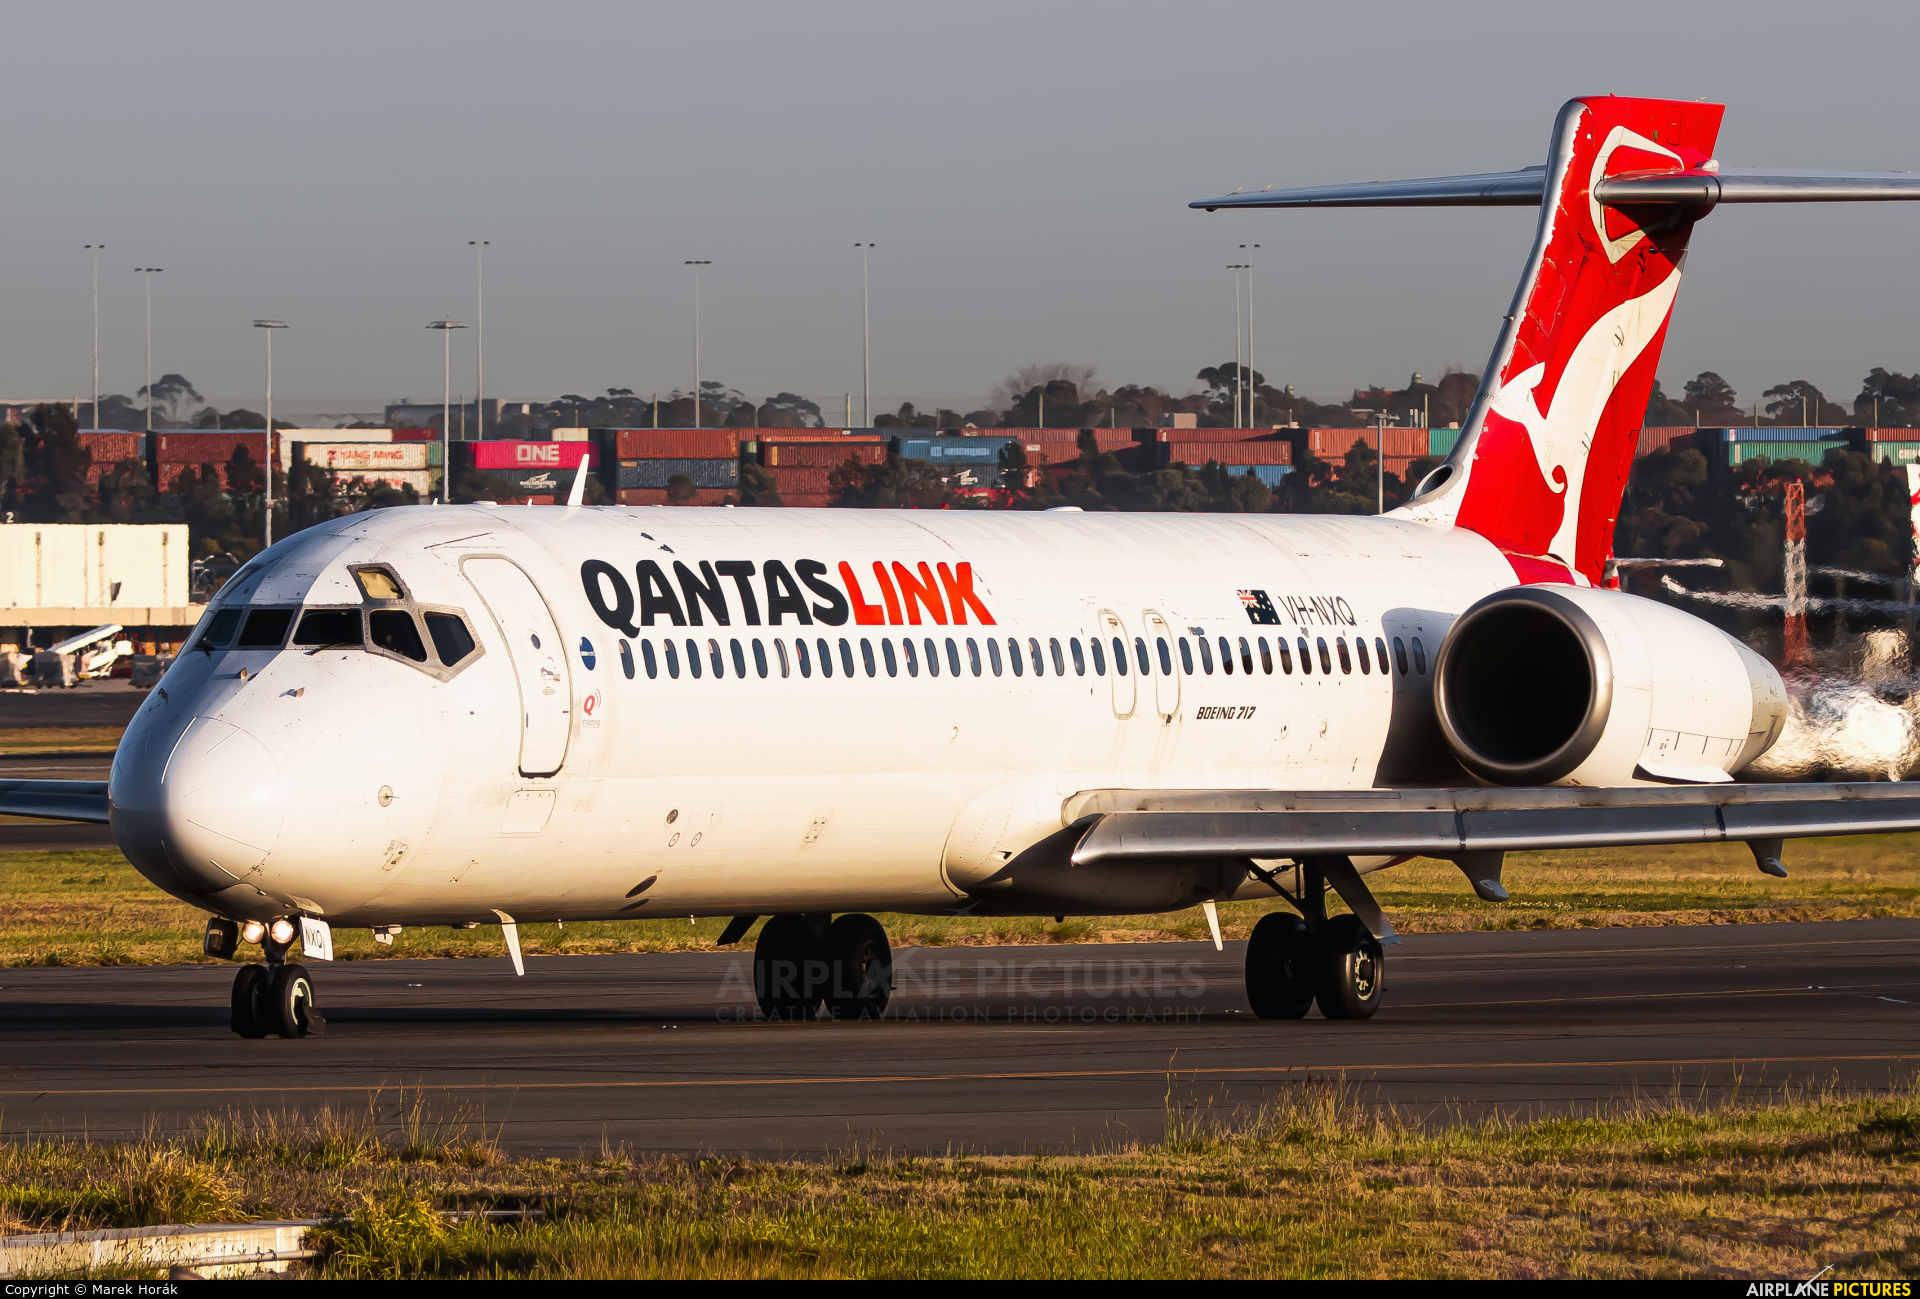 QANTAS VH-NXQ aircraft at Sydney - Kingsford Smith Intl, NSW